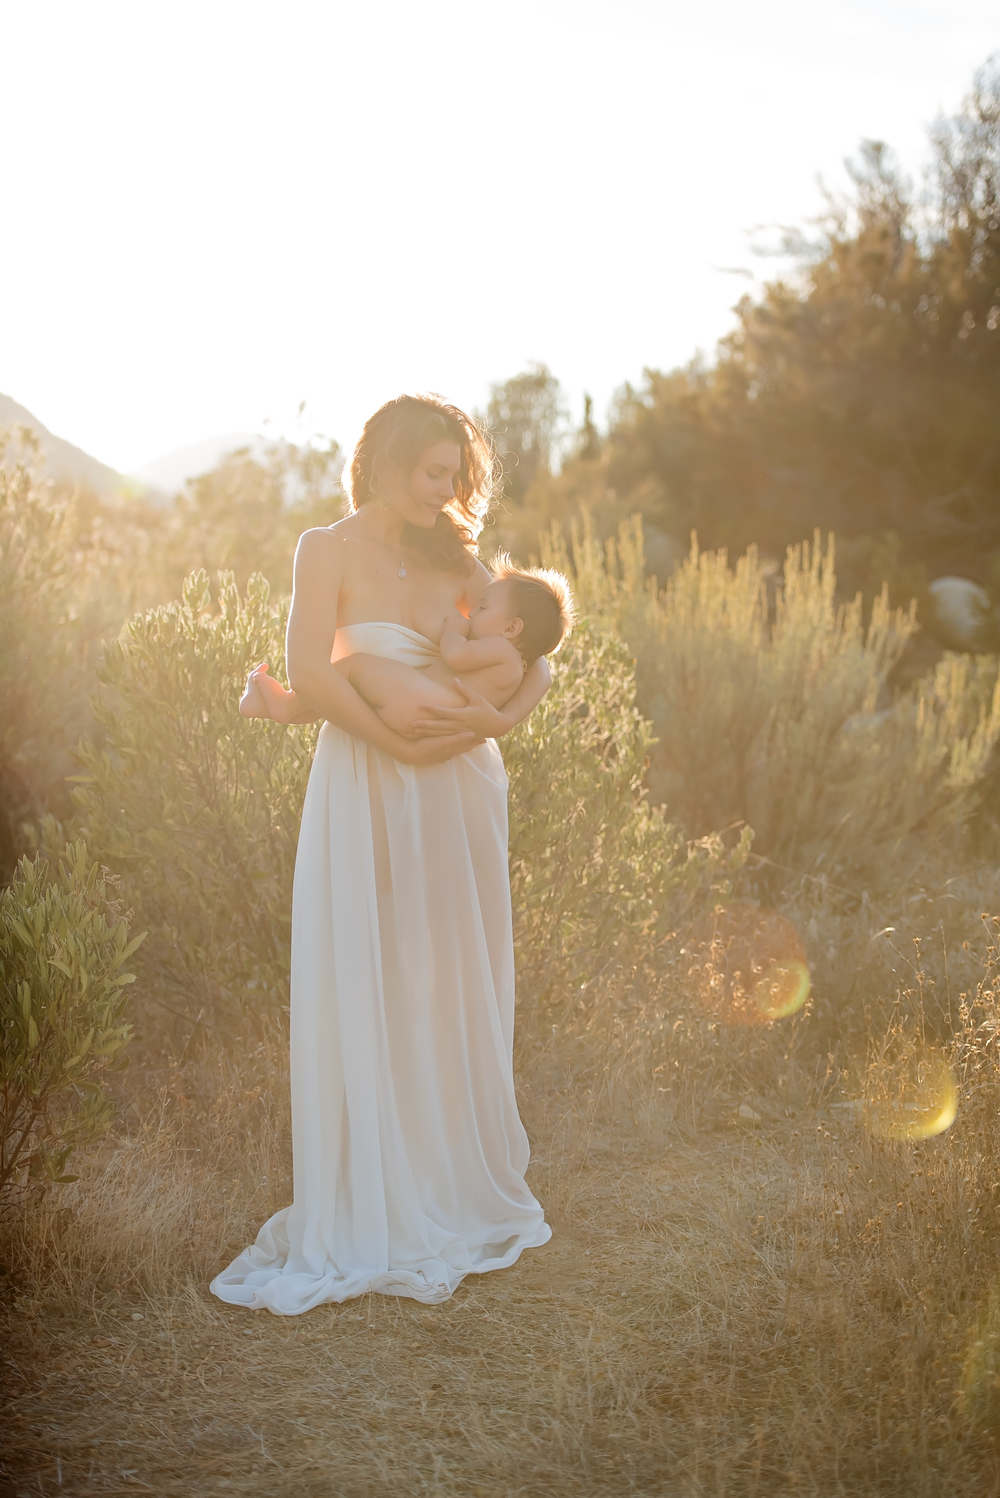 Beautiful breastfeeding images in nature | nursing photographer